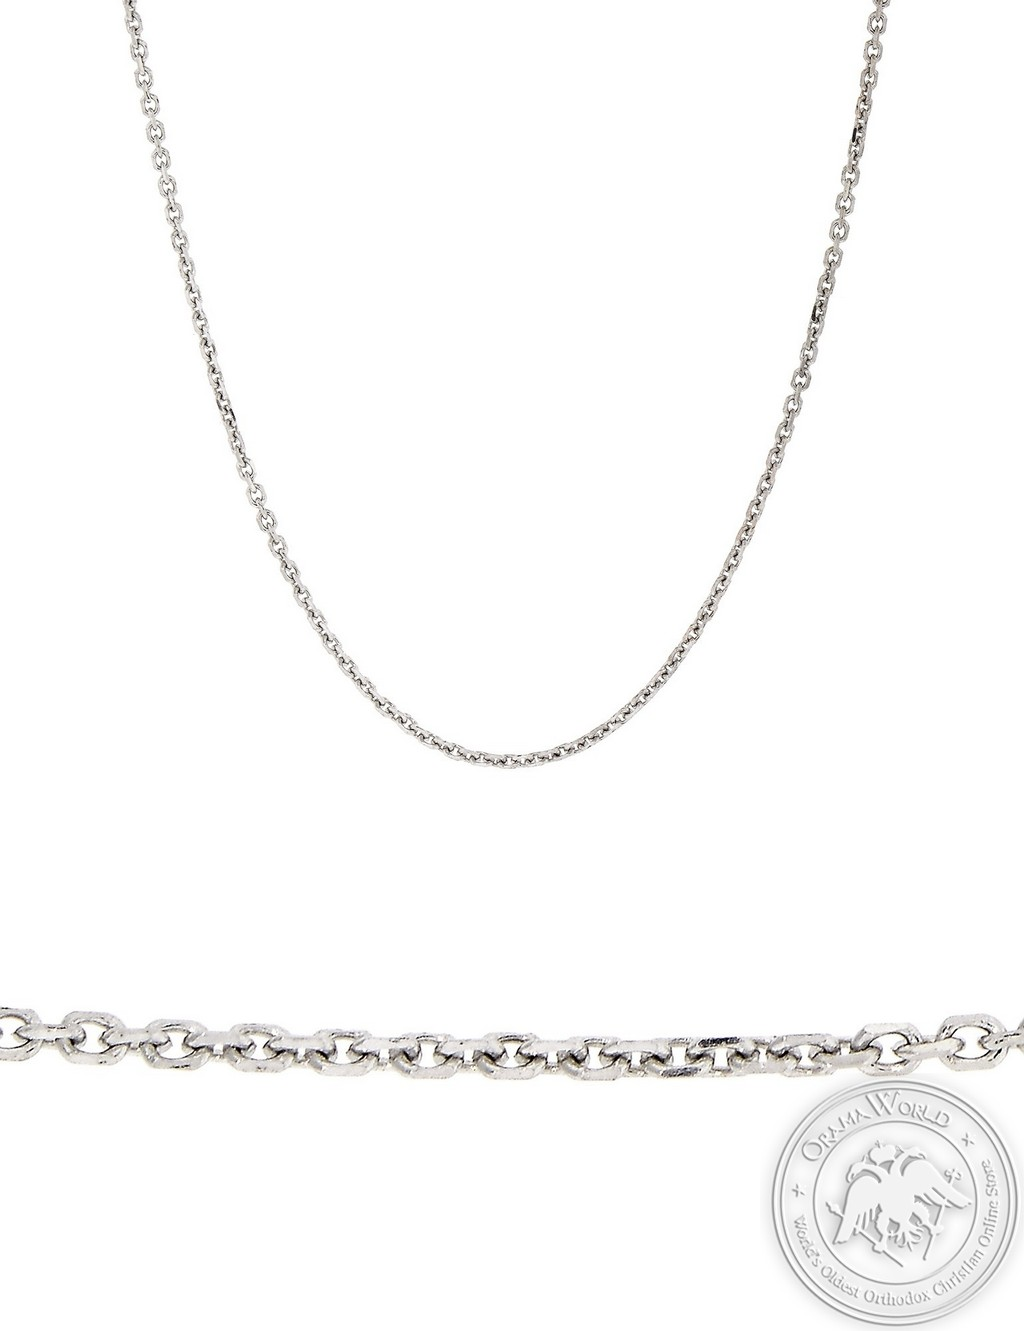 Chain made of 18K White Gold